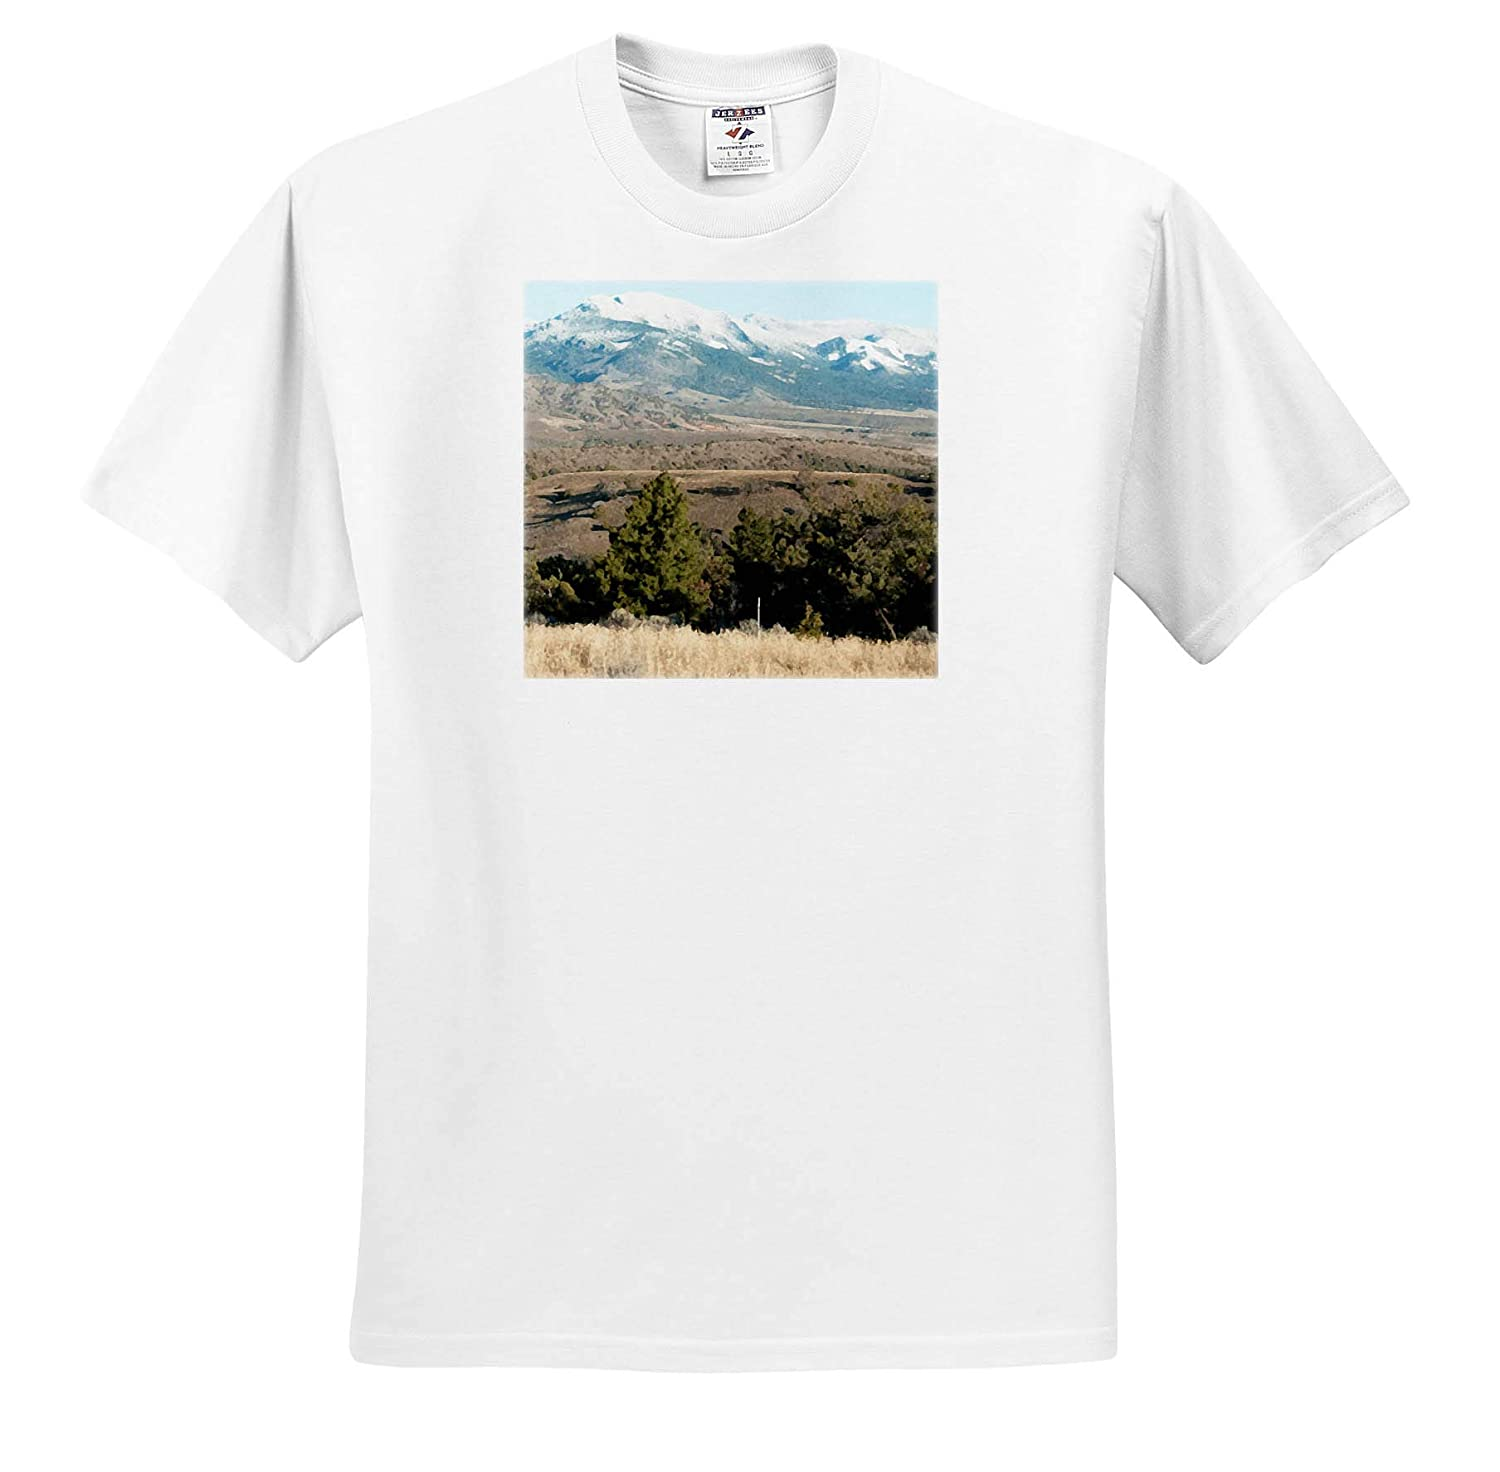 T-Shirts A Digital Watercolor of a Mountain with Green Trees Below 3dRose Jos Fauxtographee Watercolor Montana Hills